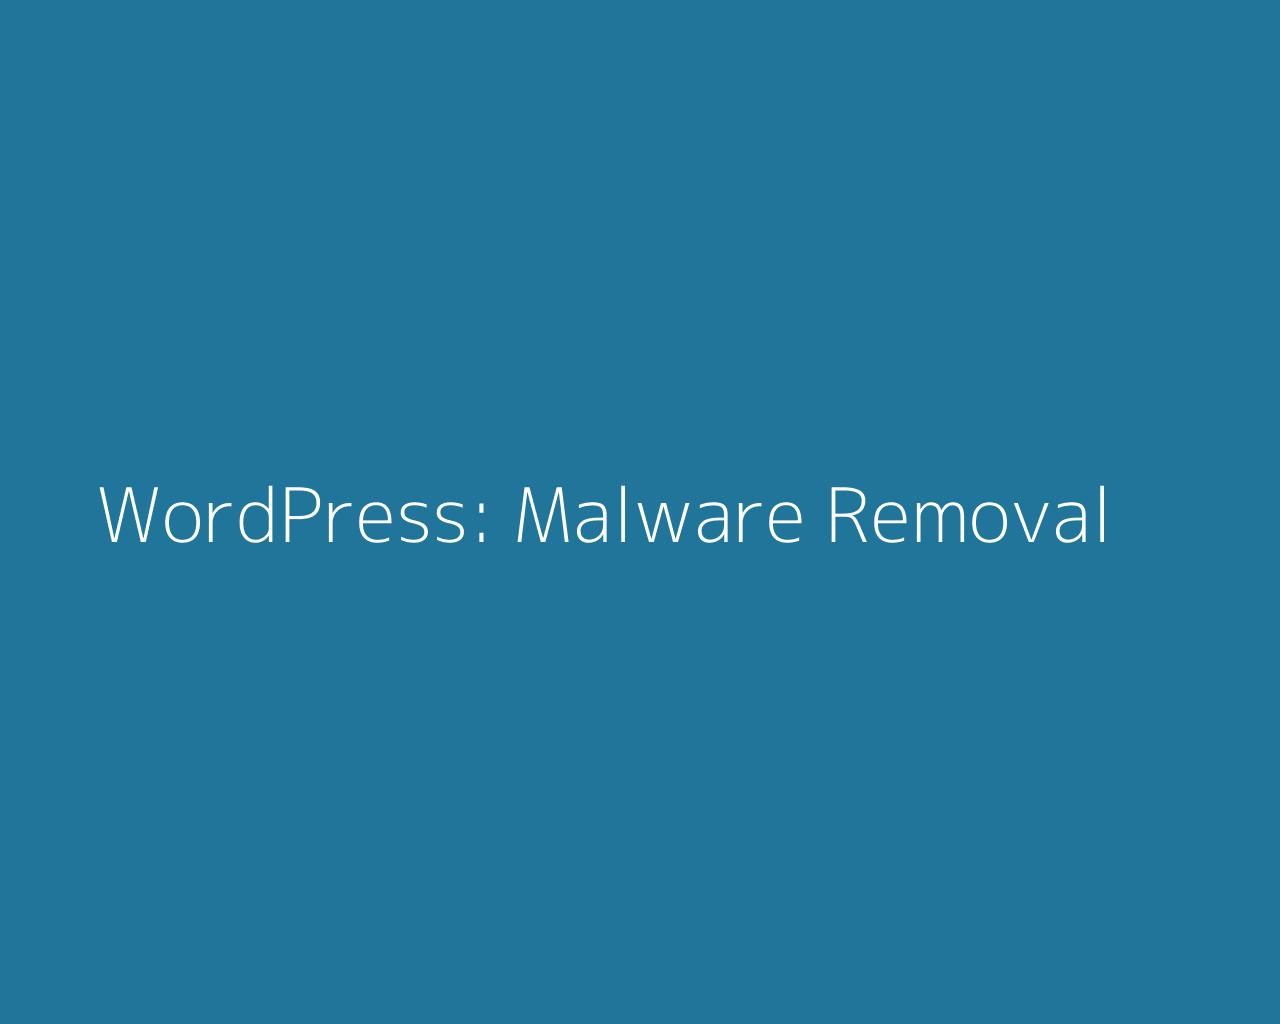 WordPress Malware Removal by andyc225 - 102416